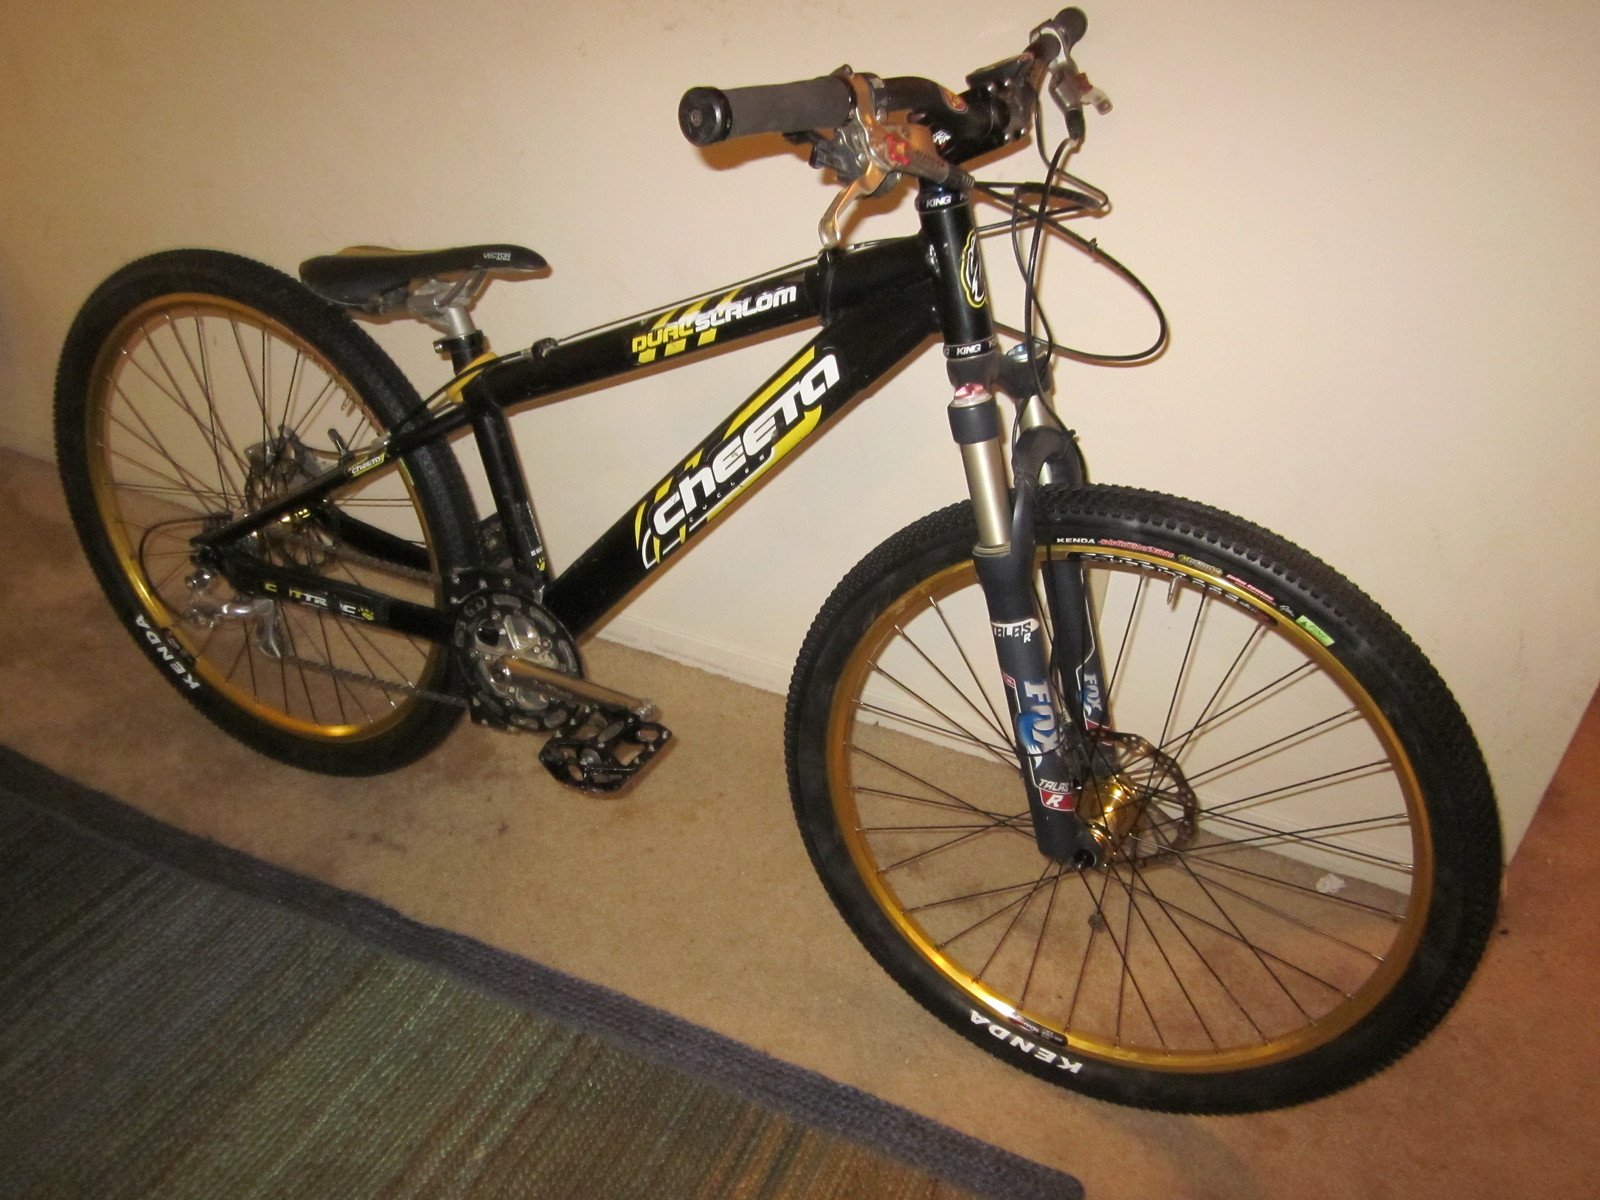 The bike I rode the most